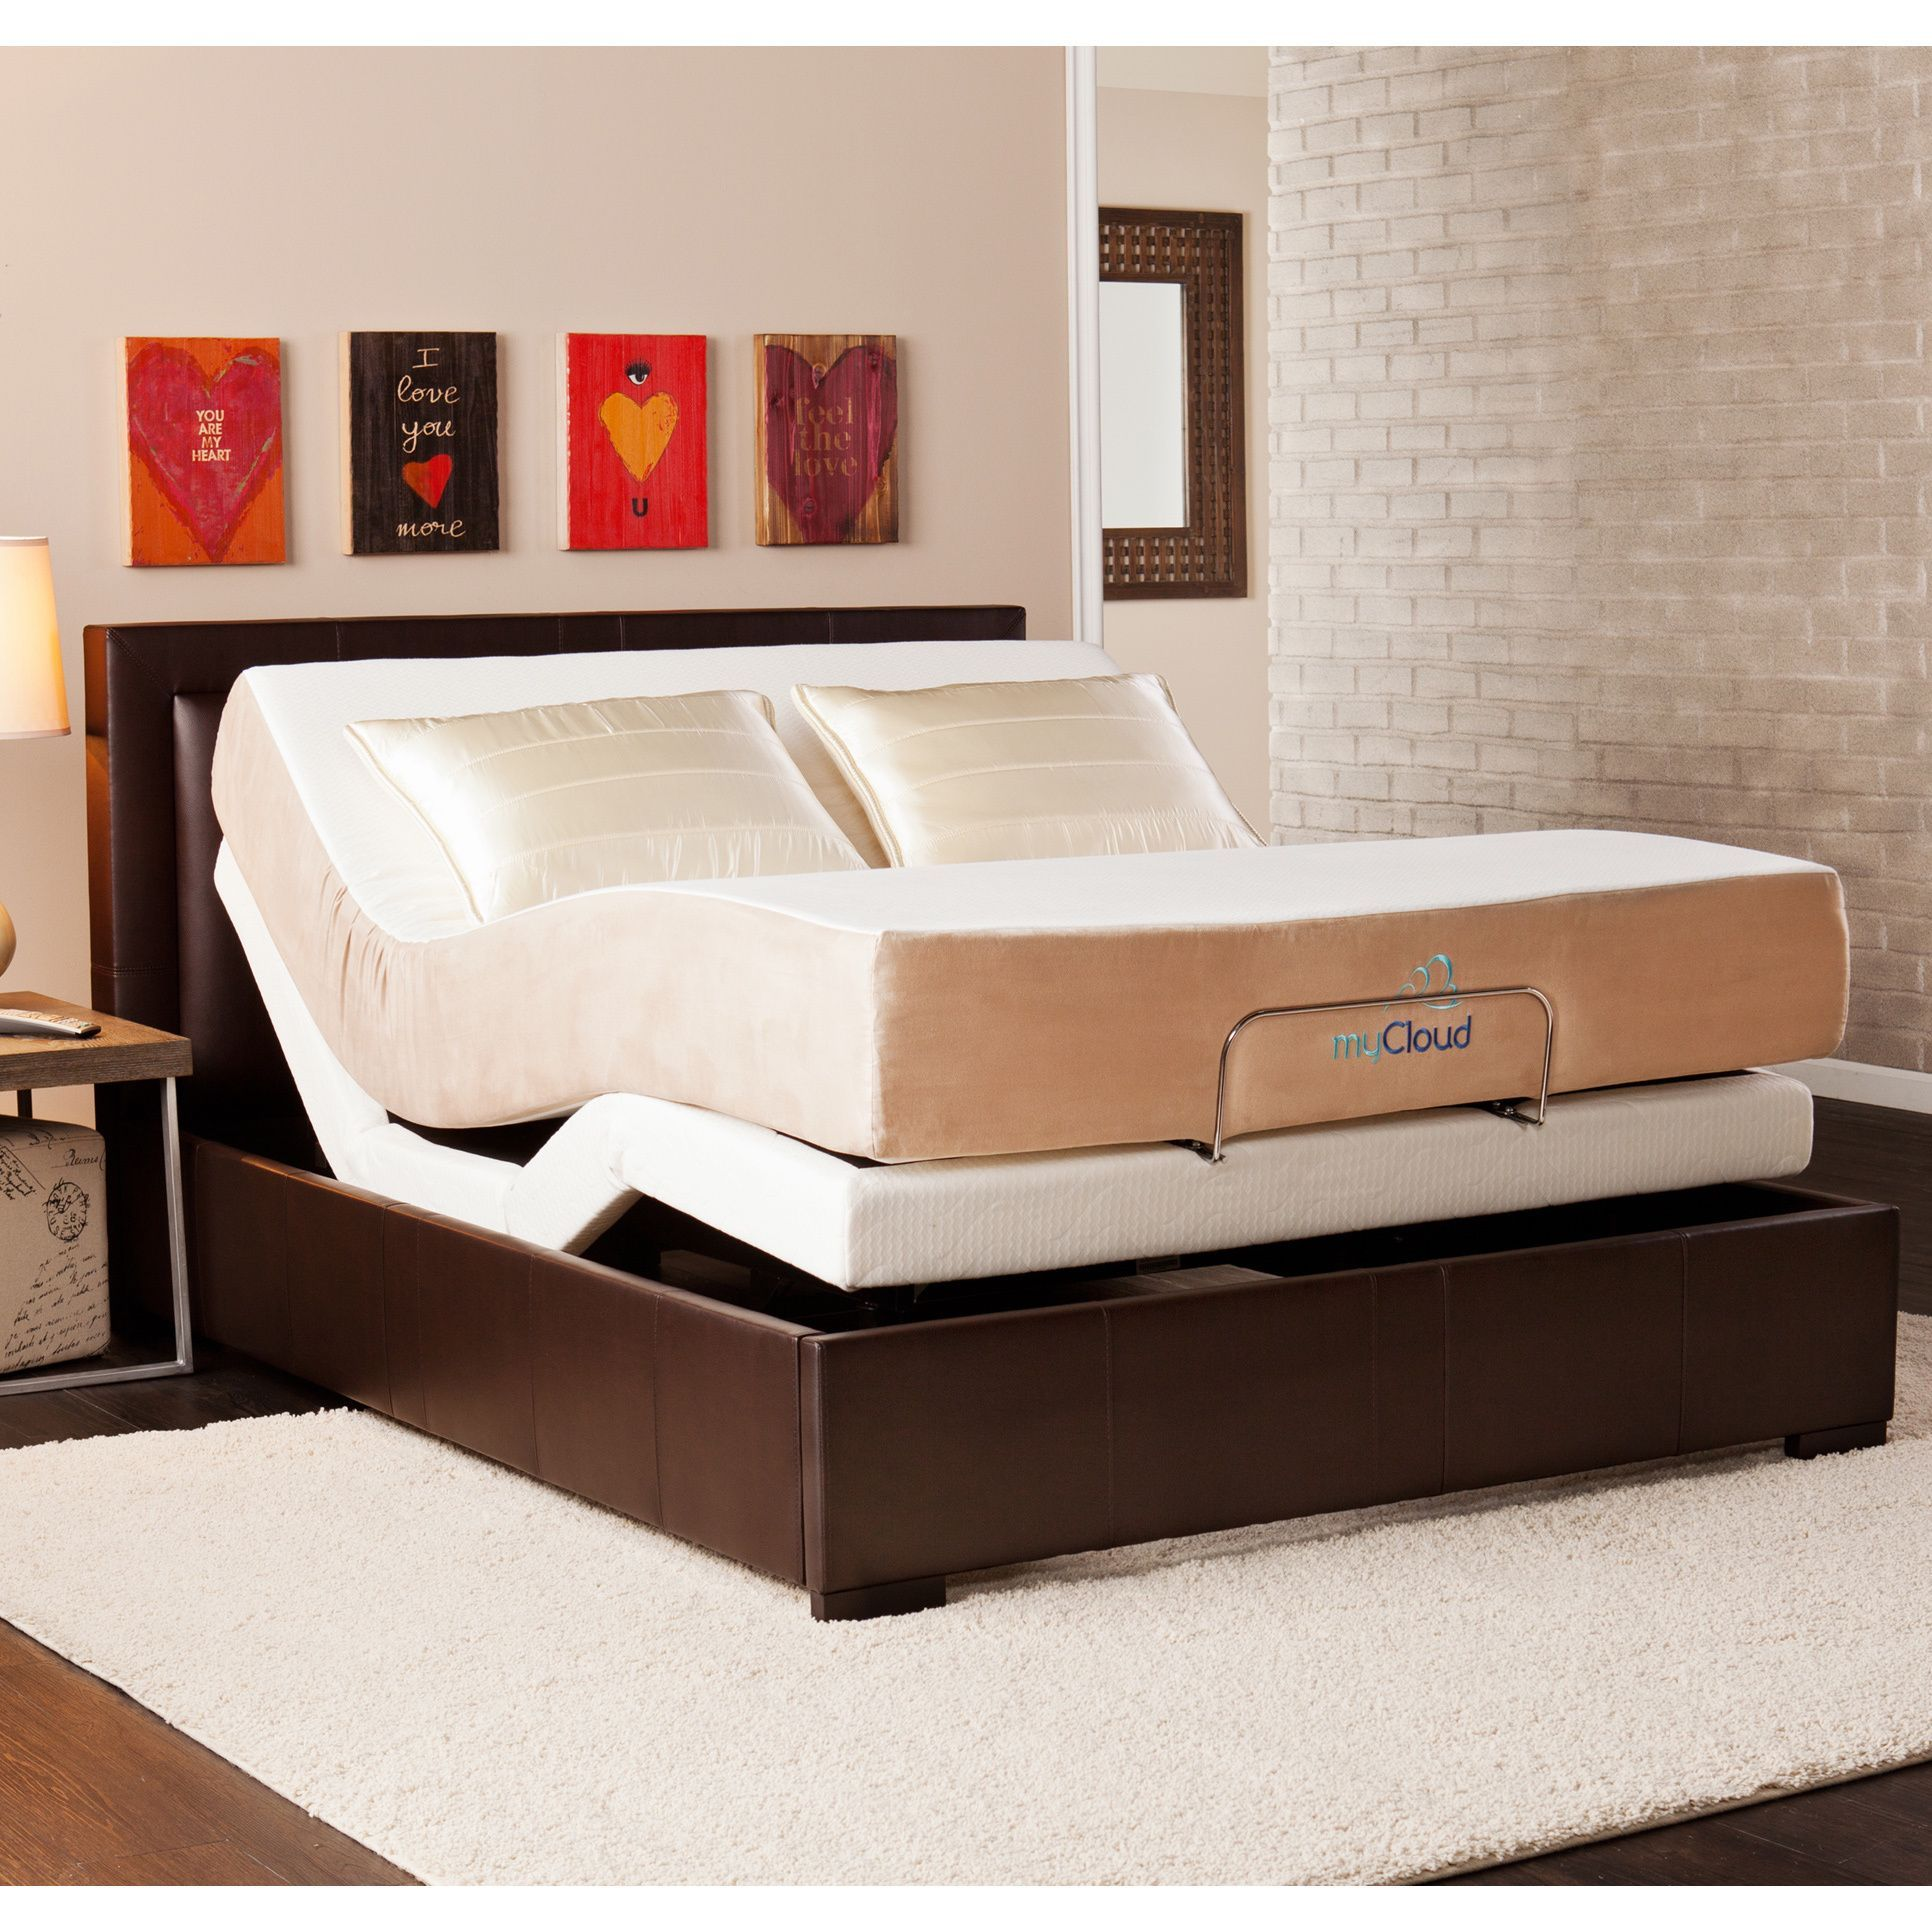 myCloud Adjustable Bed Queensize with 10inch Gel Infused